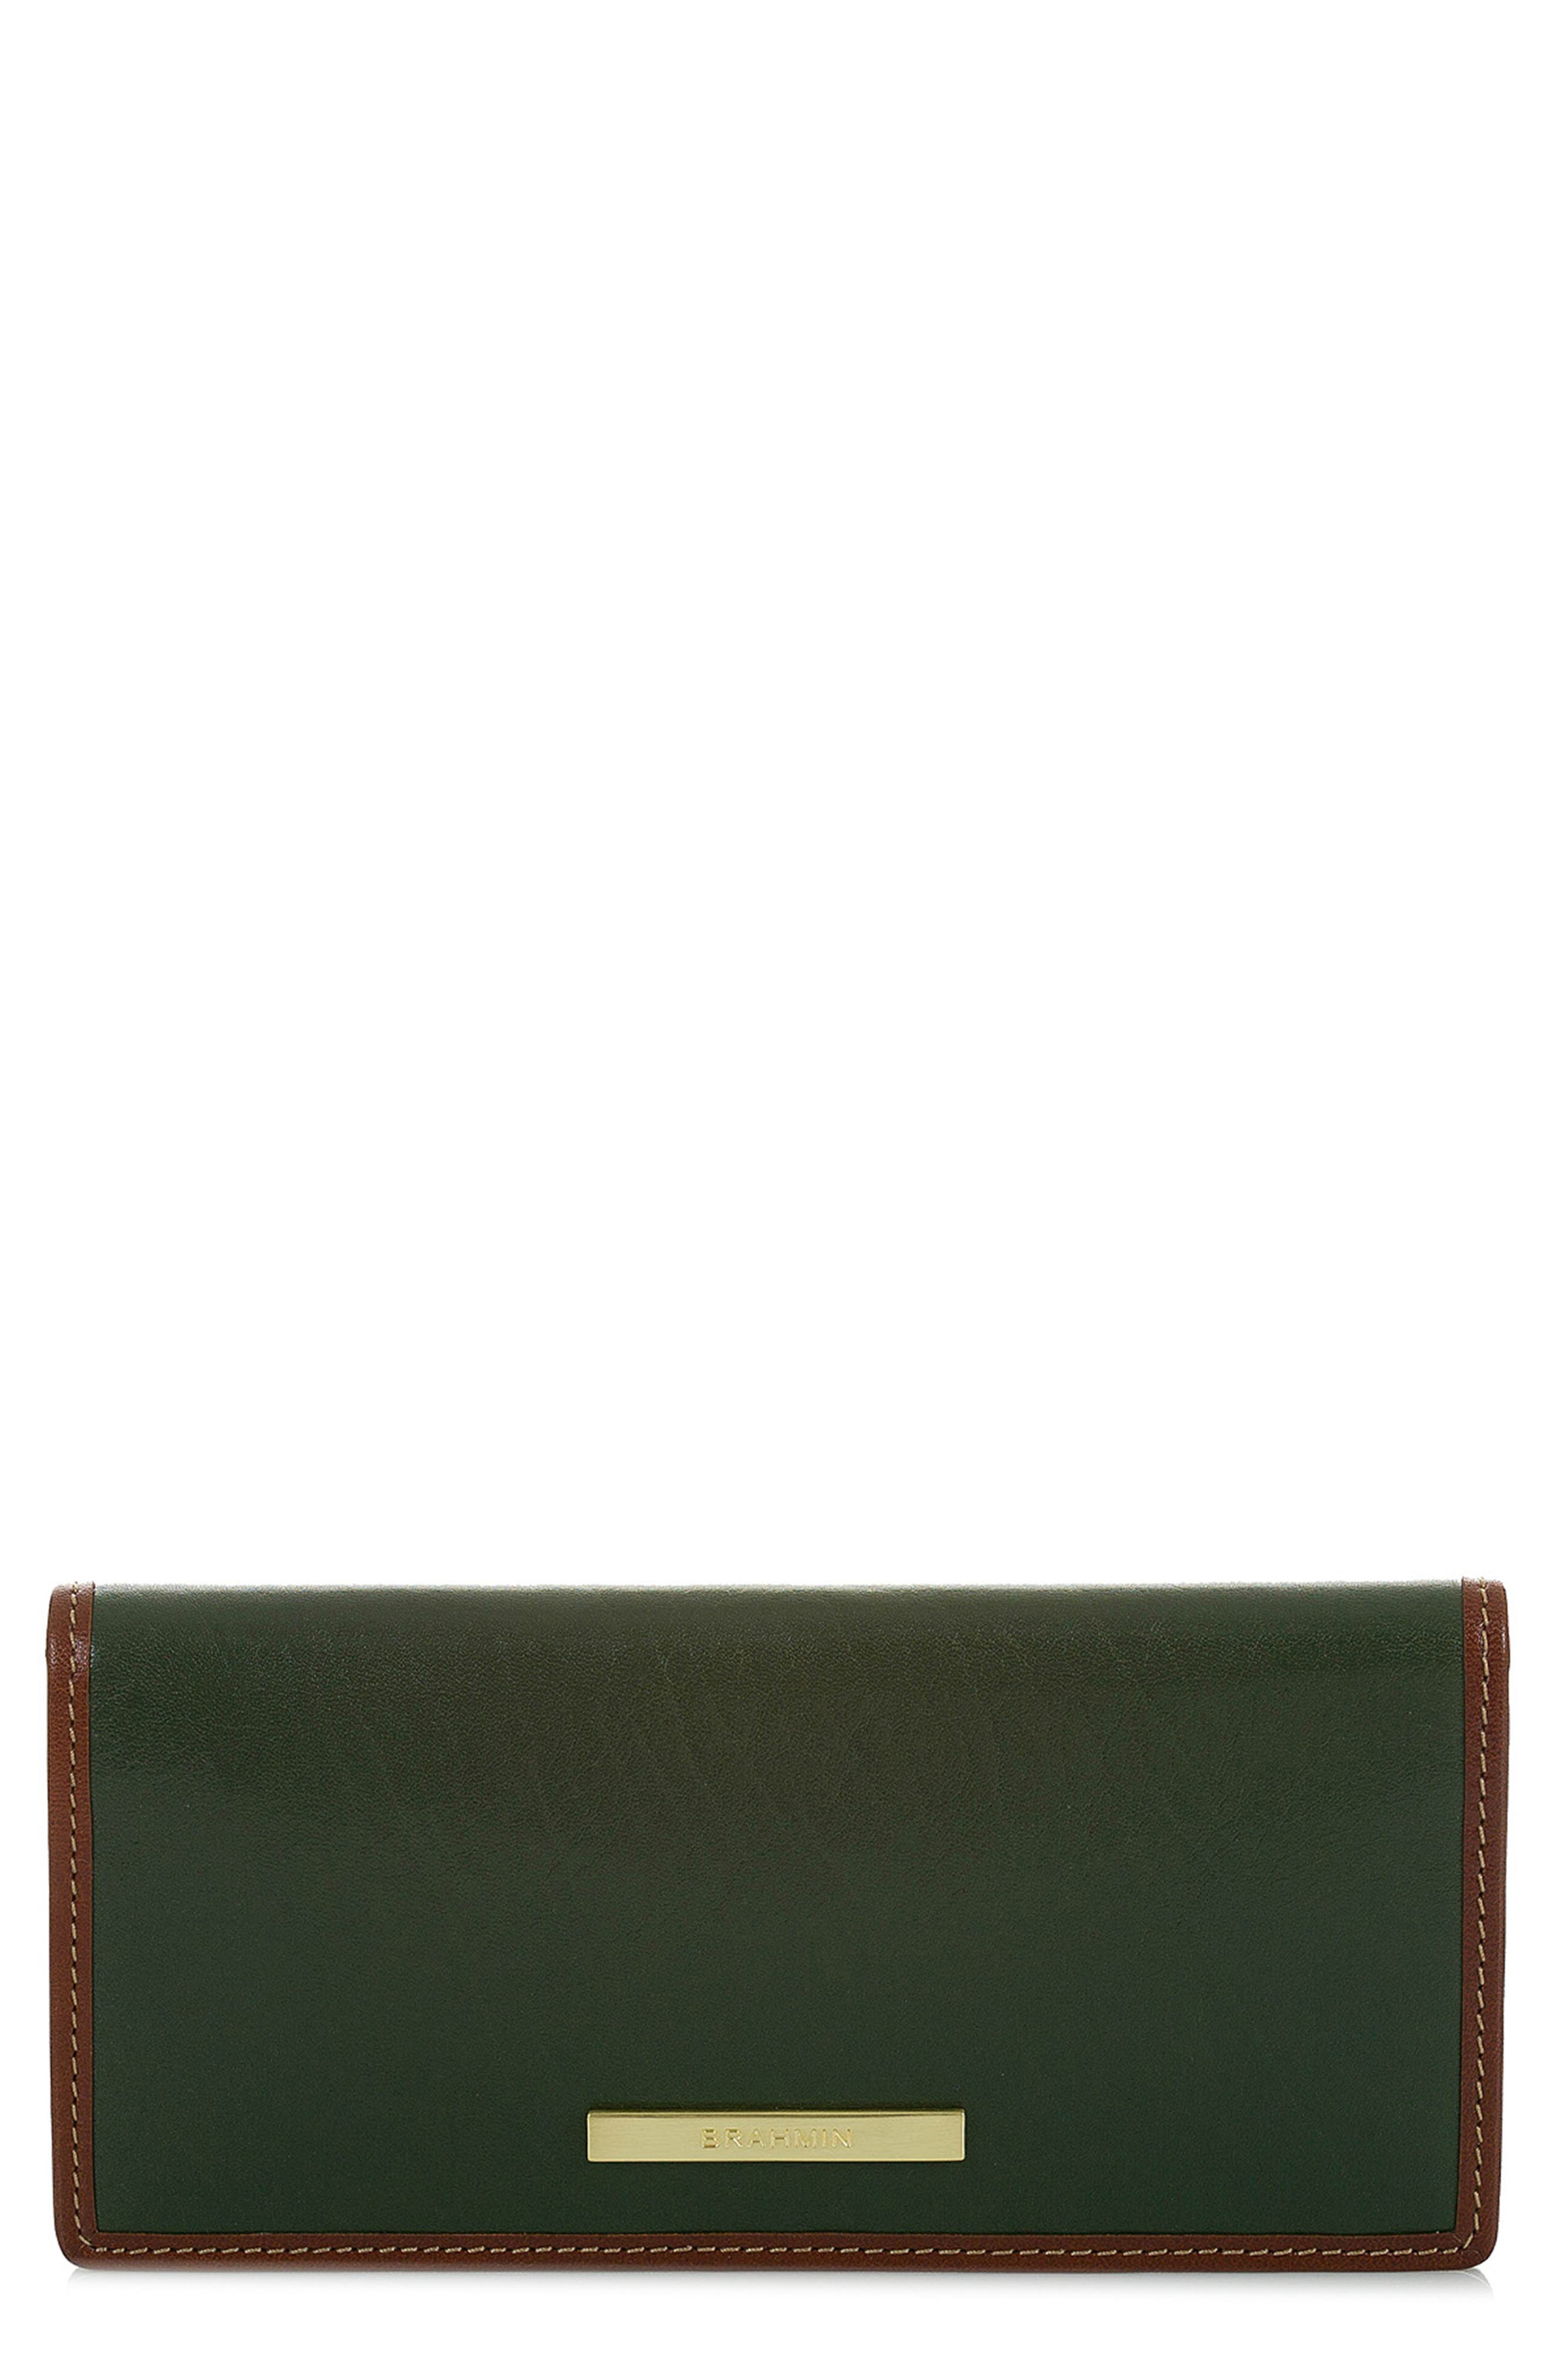 Ady Leather Wallet,                         Main,                         color, HUNTER